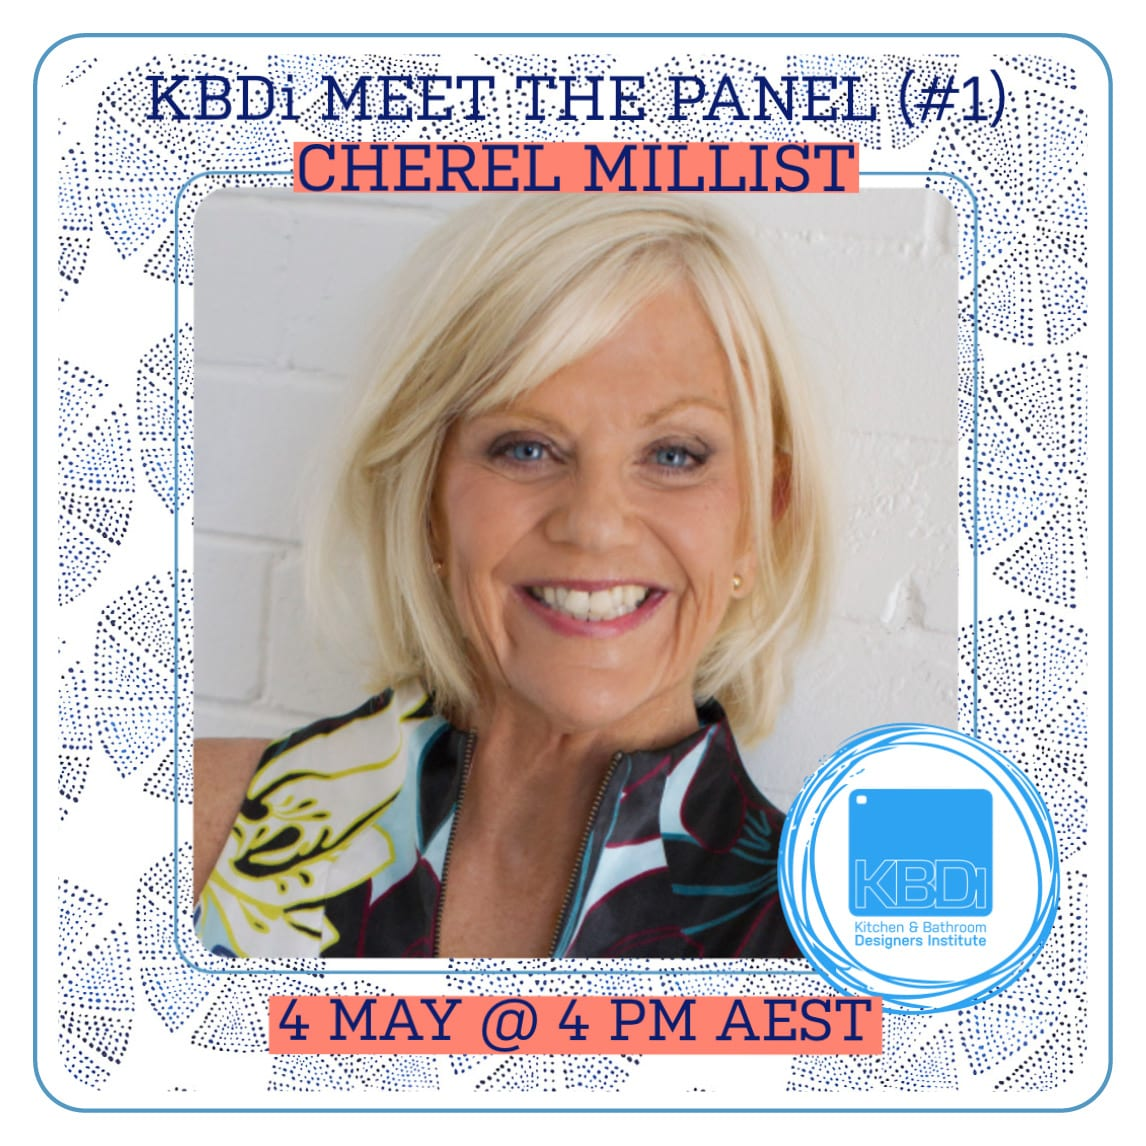 Introducing the KBDi Designer Awards 2021 Judges: Cherel Millist